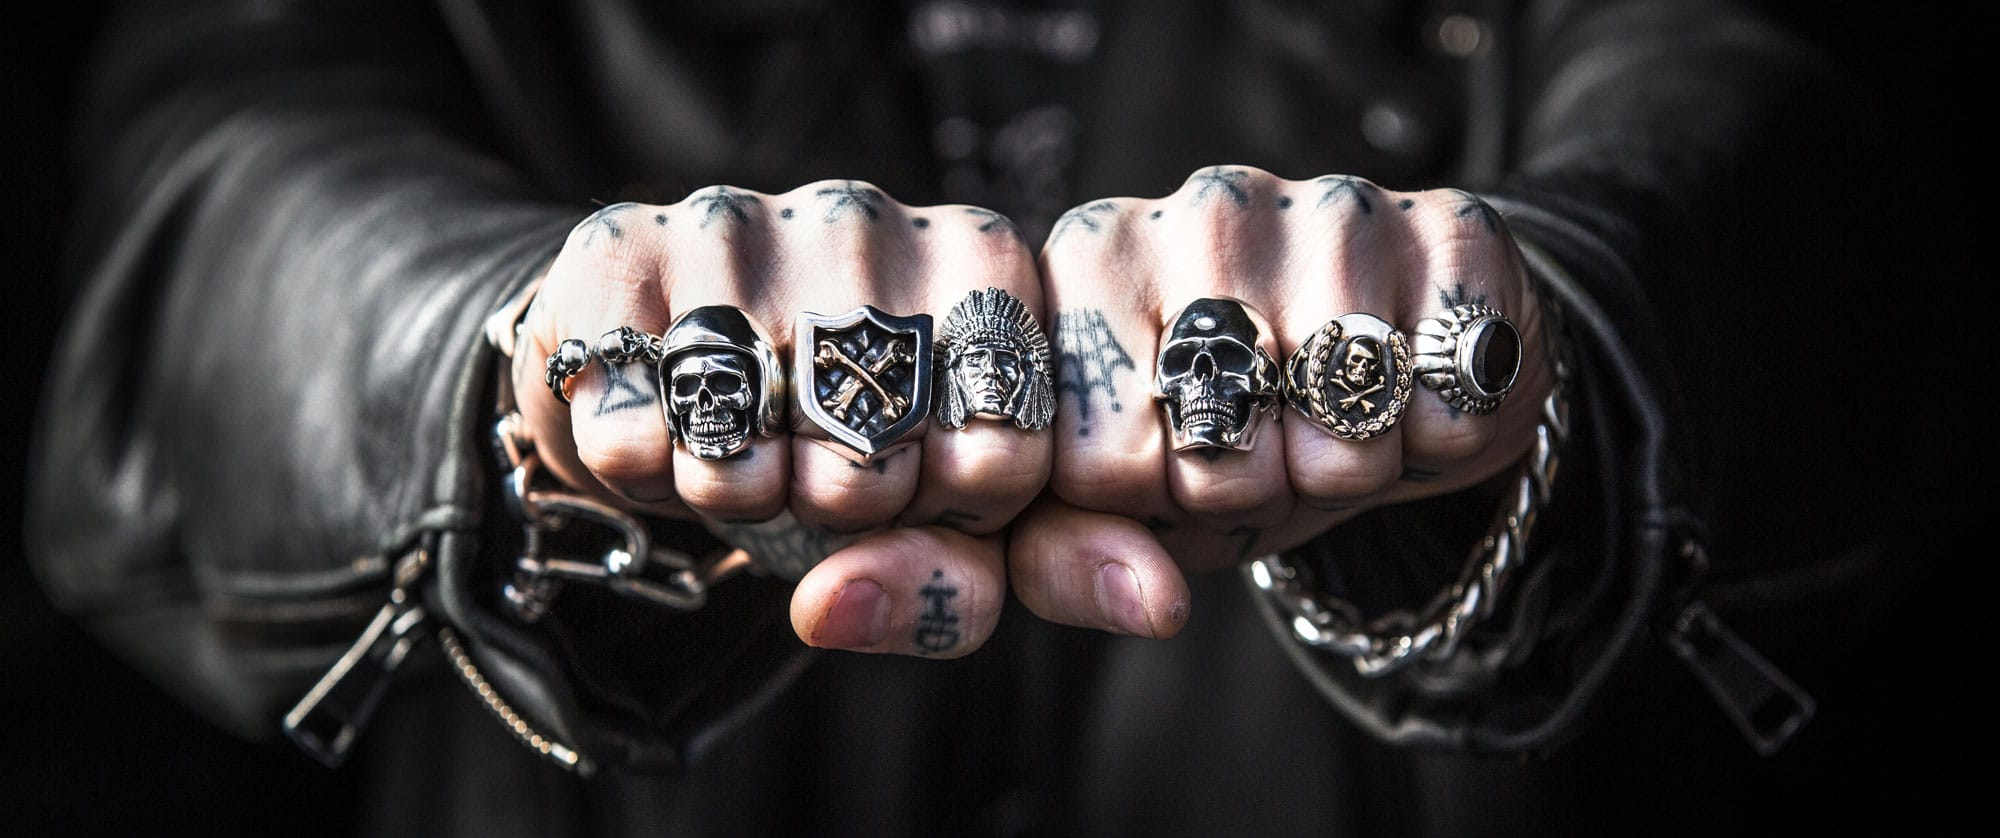 A man in a black leather jacket with hand tattoos wearing lots of silver rings